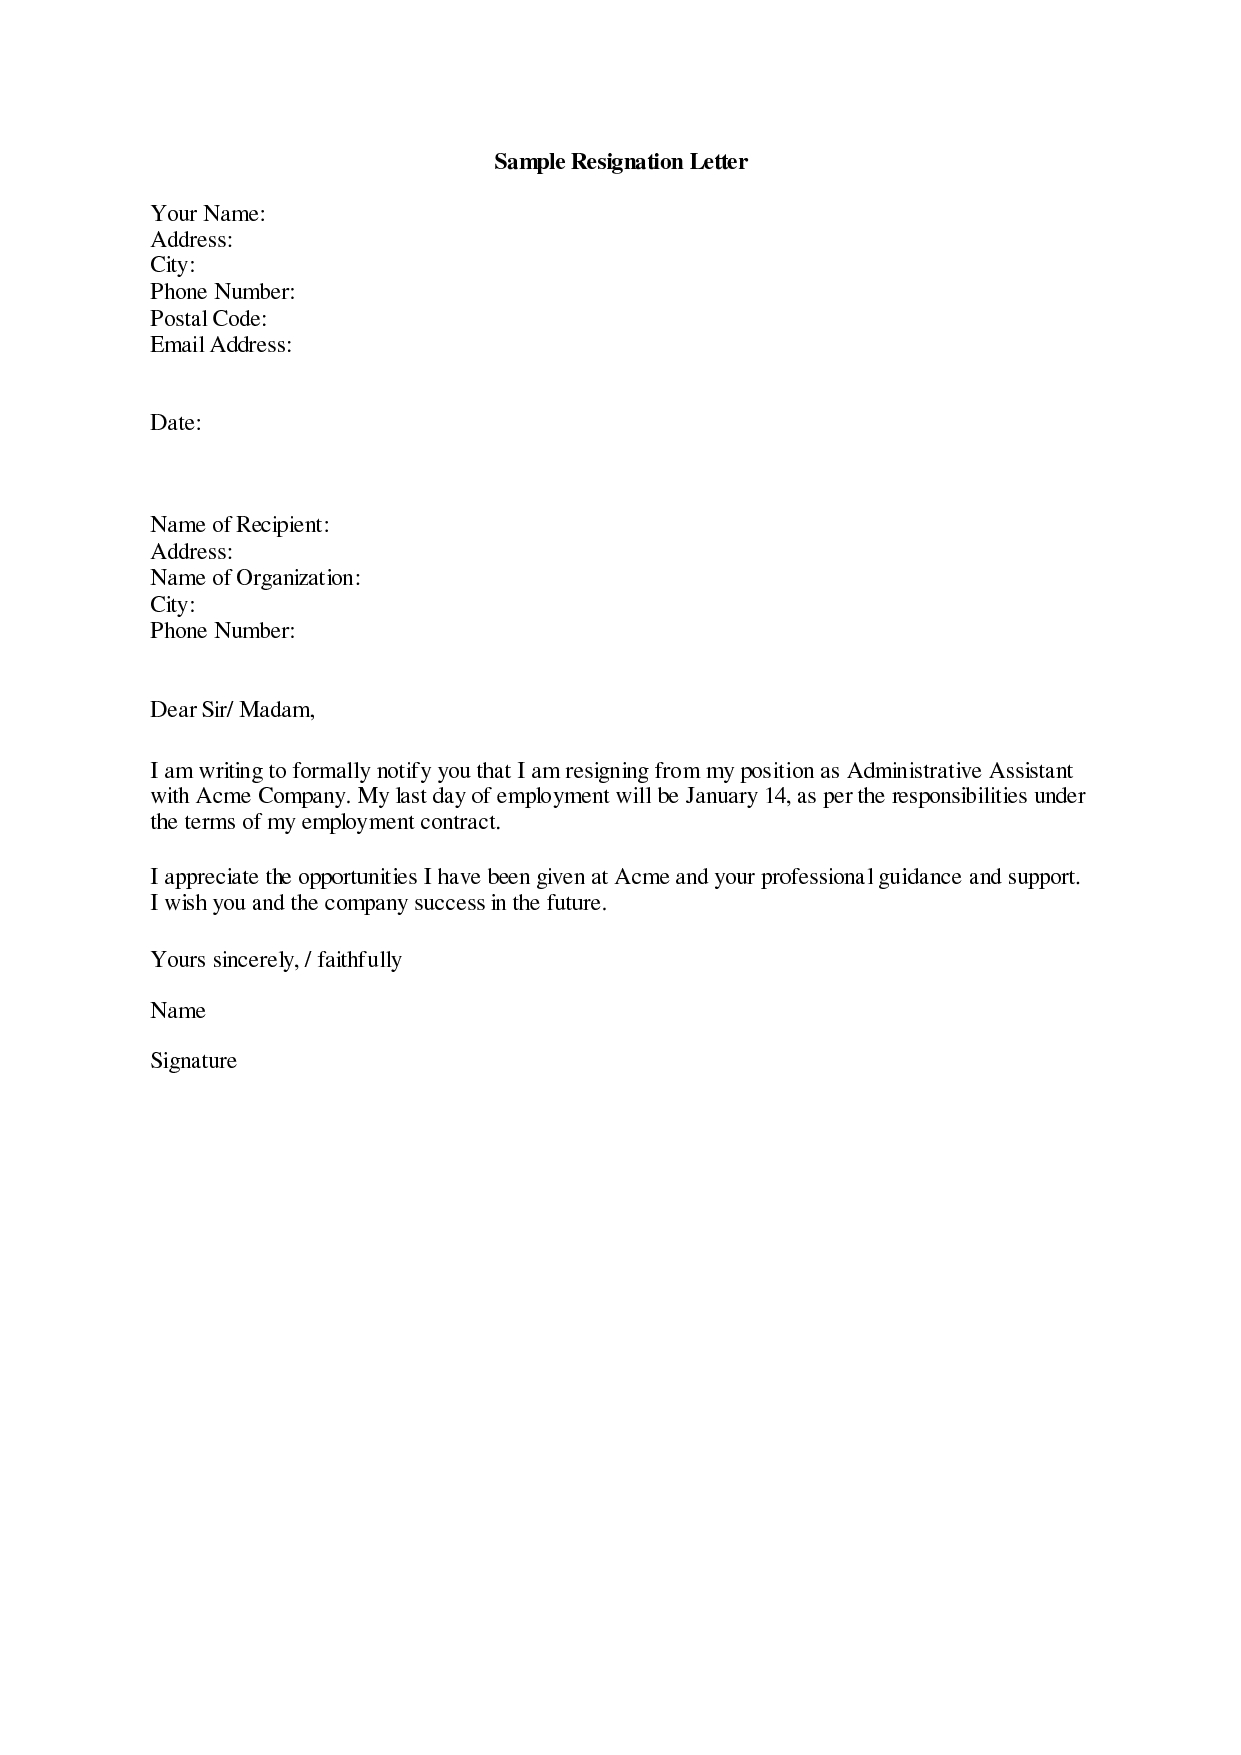 Work Resignation Letter Template - Resignation Letter Sample 19 Letter Of Resignation